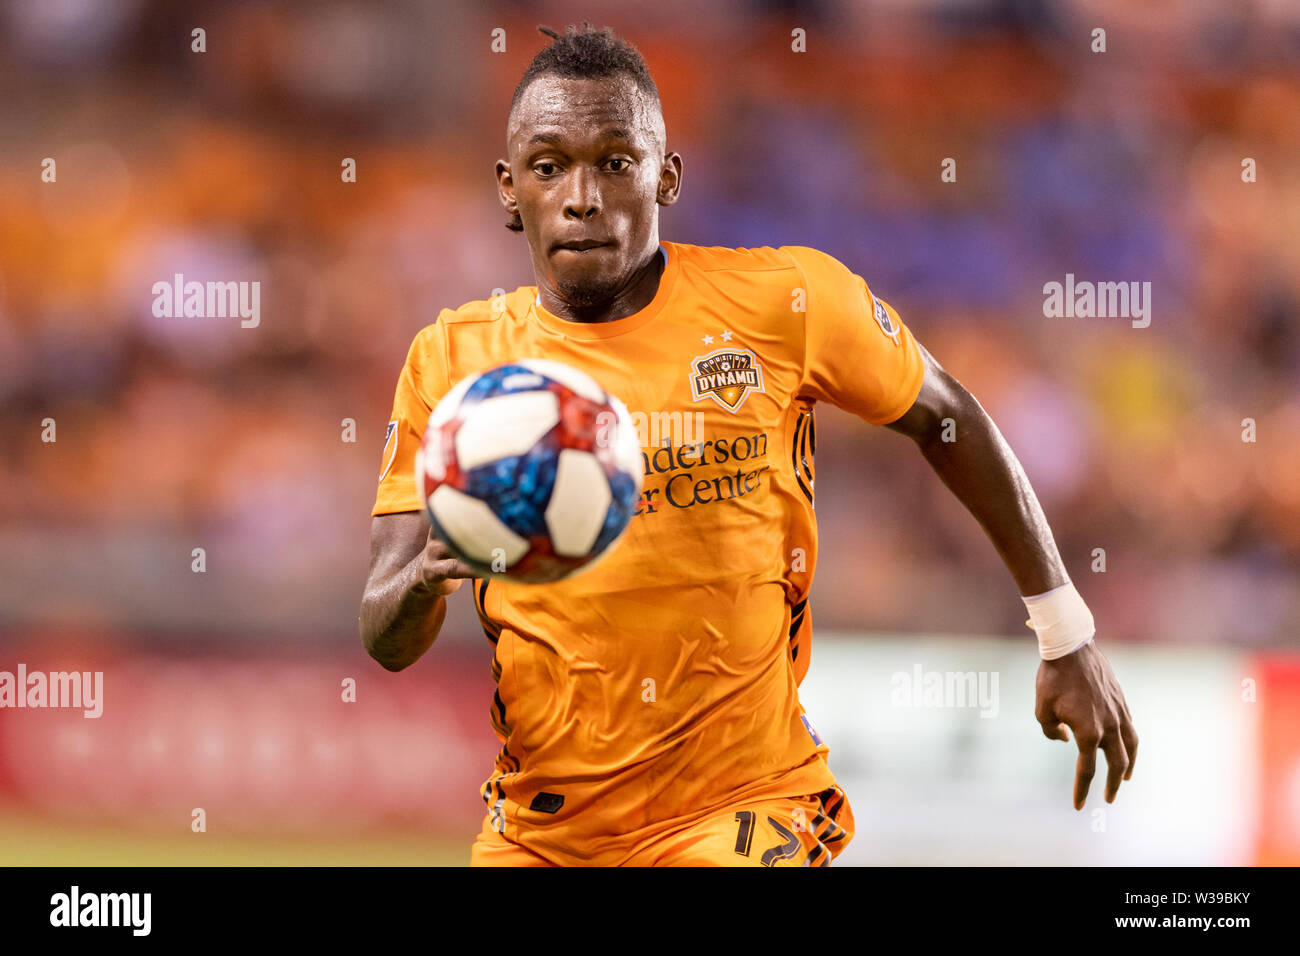 Houston, Texas, USA. 12th July, 2019. Houston Dynamo forward Alberth Elis (17) chases the ball during a match between Los Angeles FC and Houston Dynamo at BBVA Stadium in Houston, Texas. The final LAFC wins 3-1. Maria Lysaker/CSM/Alamy Live News - Stock Image